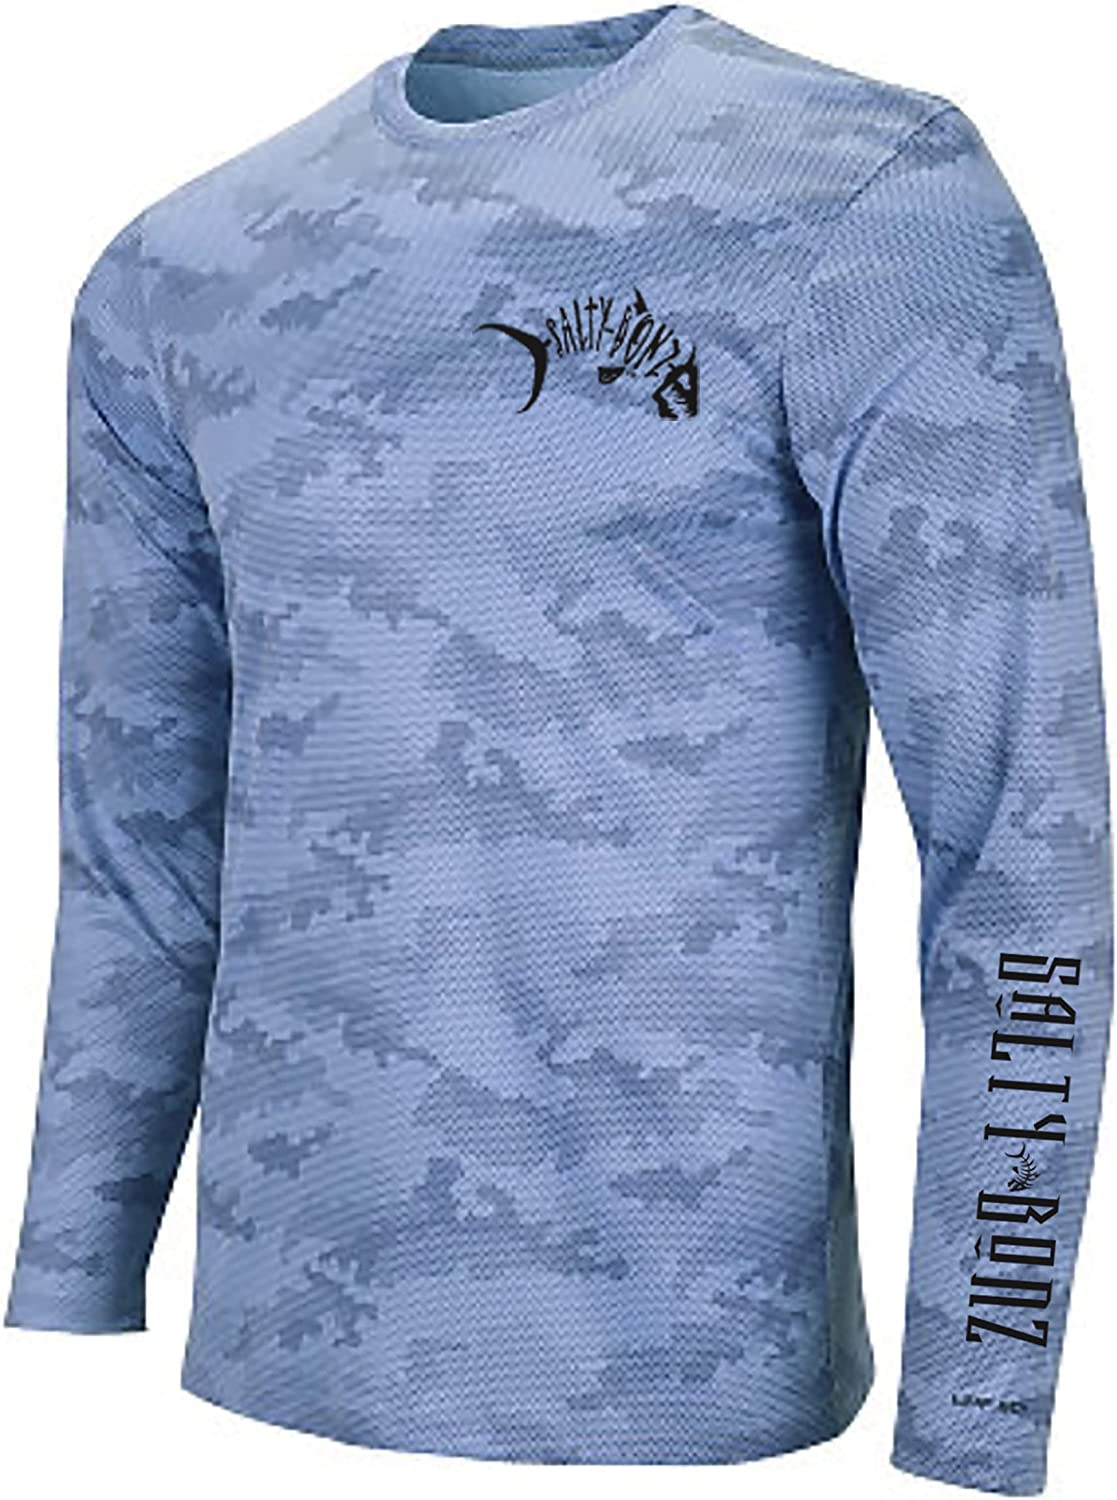 Salty Bonz Outlet ☆ Free Shipping Pompano Long Sleeve Moisture Fishing Shirt Portland Mall T- Wicking